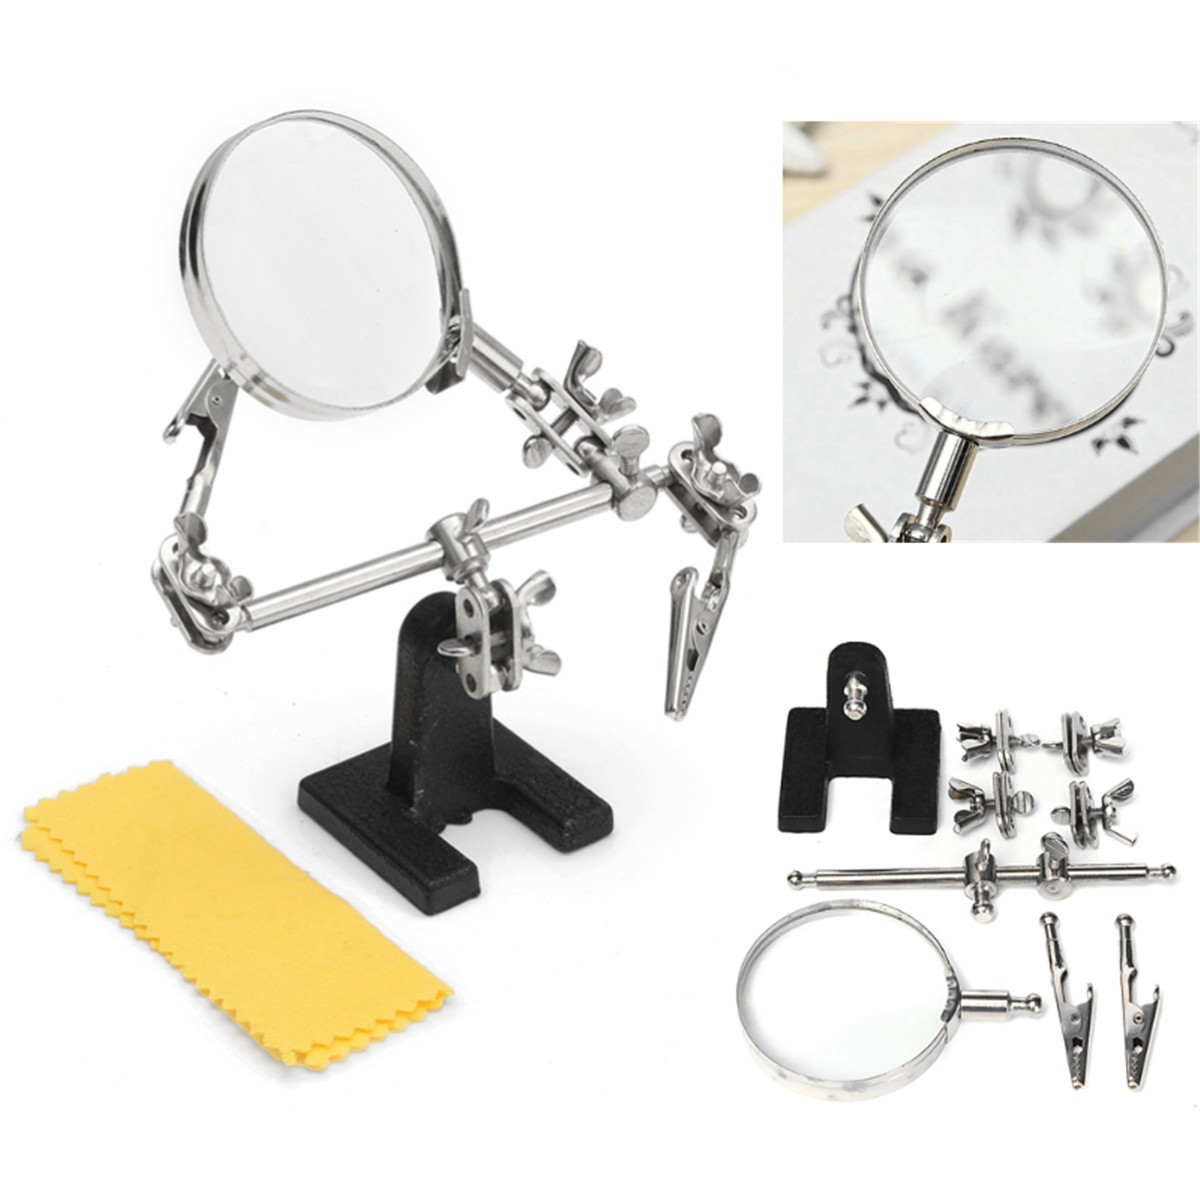 Third Hand Soldering Iron Stand Welding Tool With Magnifying Glasses Magnifier Alligator Clip Holder Clamp Helping Hand Repair